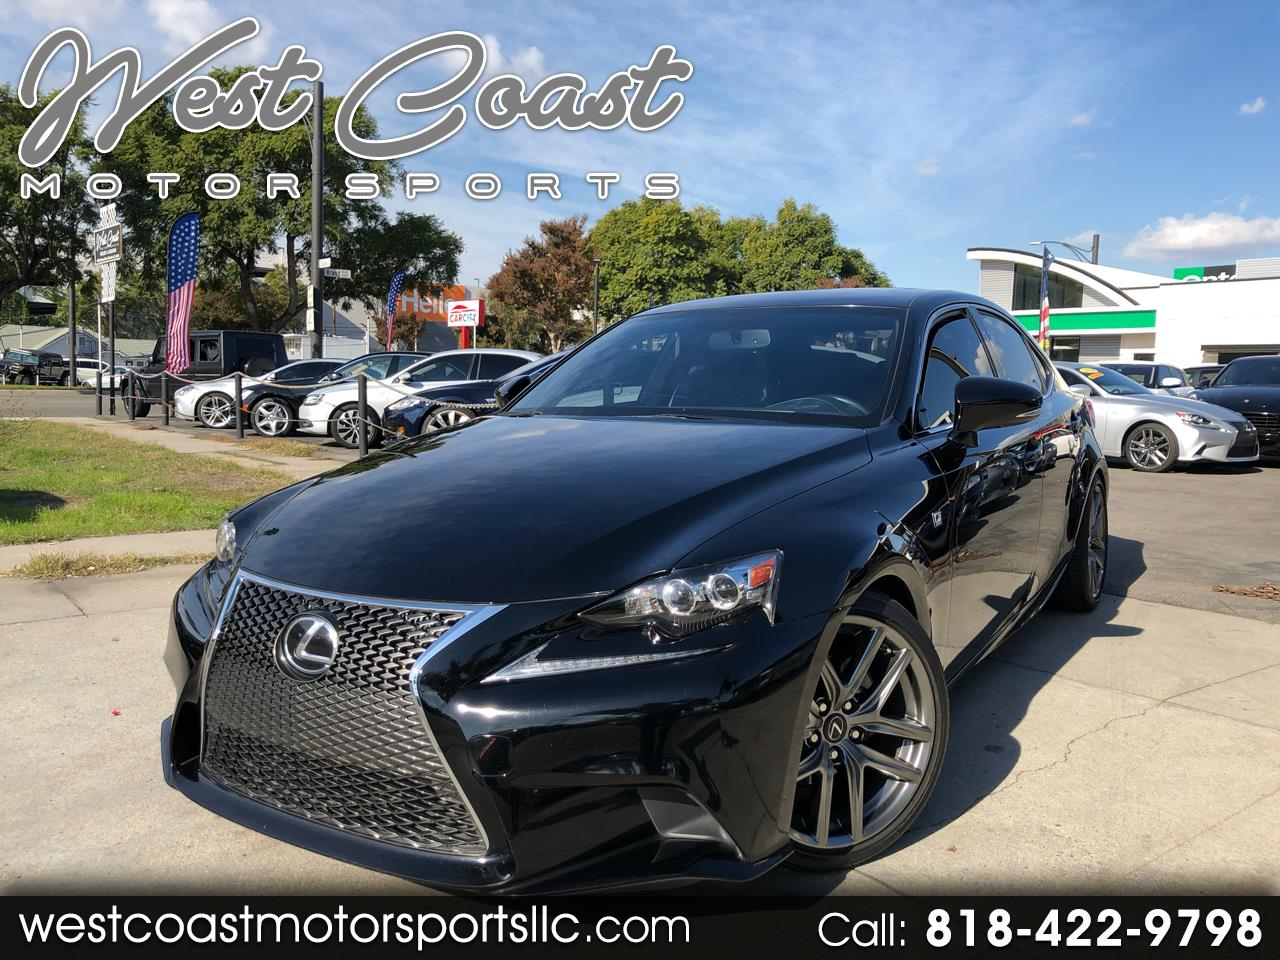 2014 Lexus IS 250 F SPORT RWD